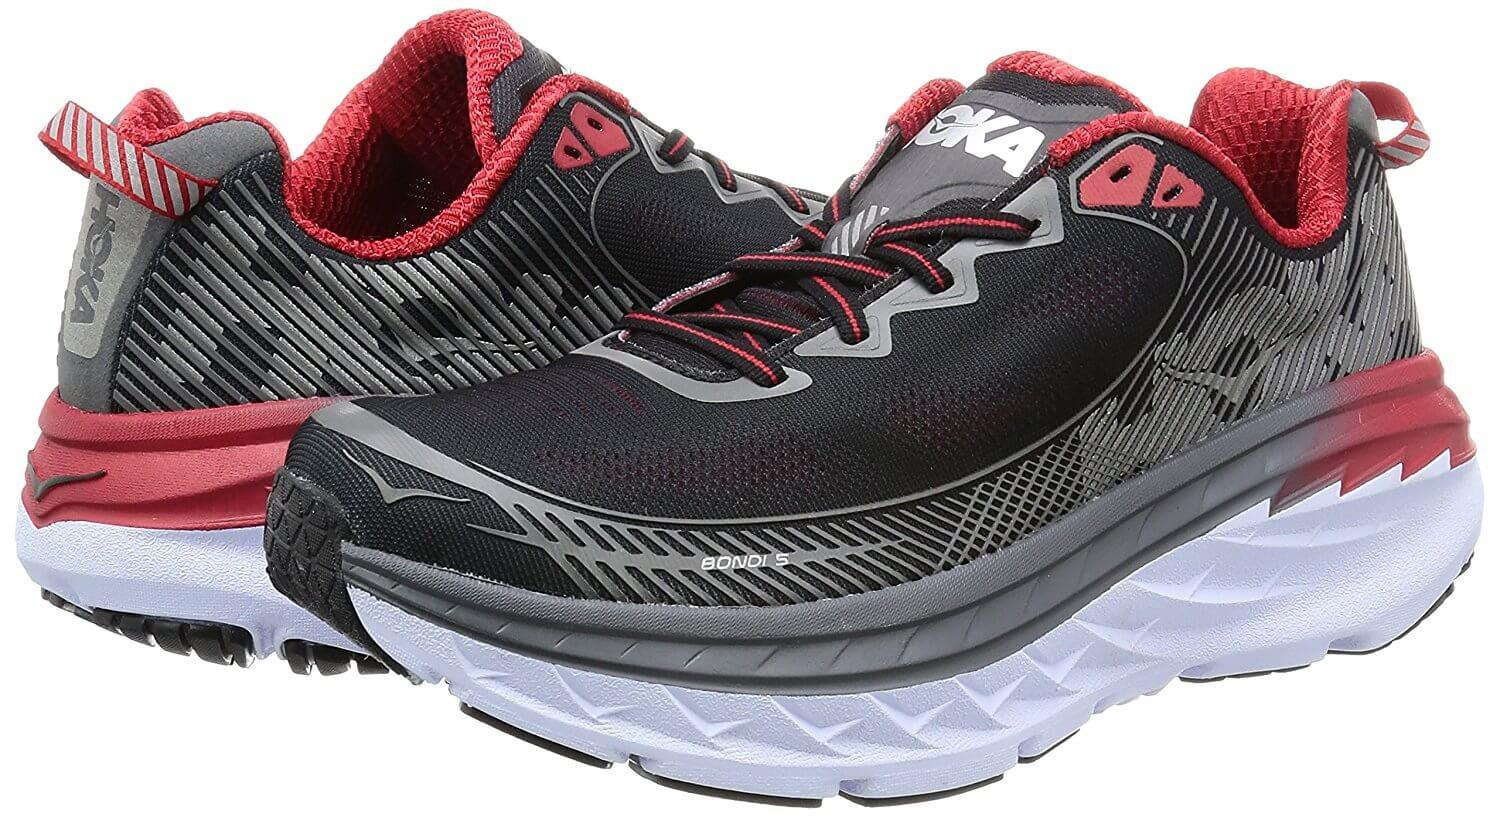 Sleek design and colors of the hoka one one bondi 5